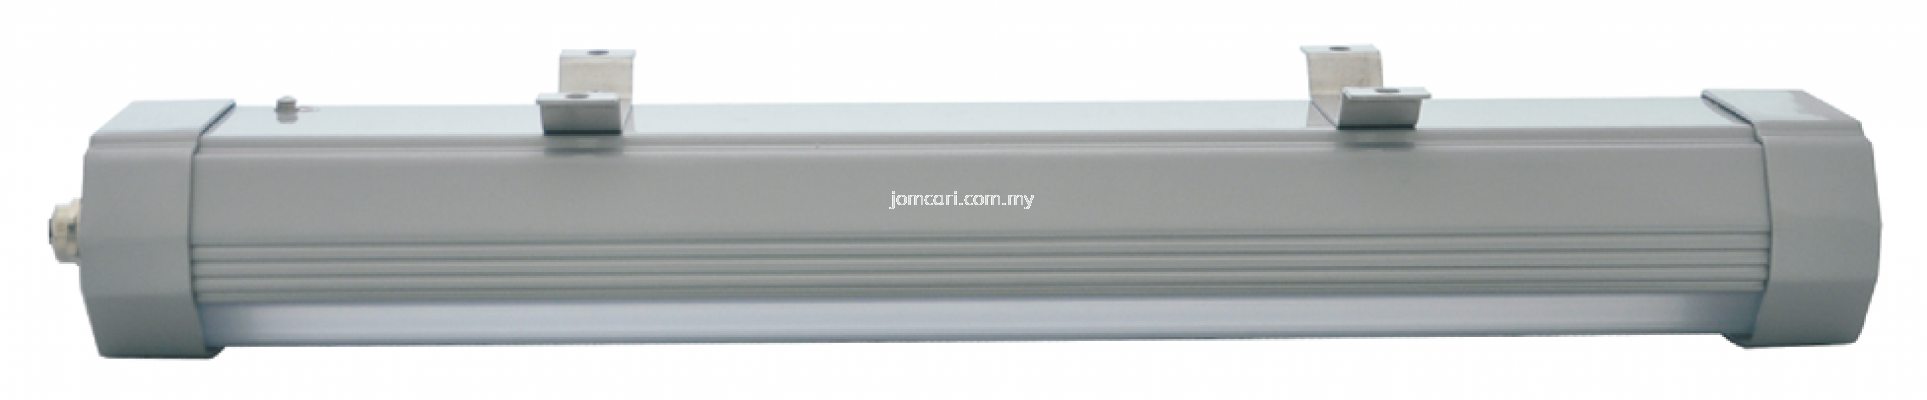 CARY KLE1011 LED Explosion Proof Linear Light